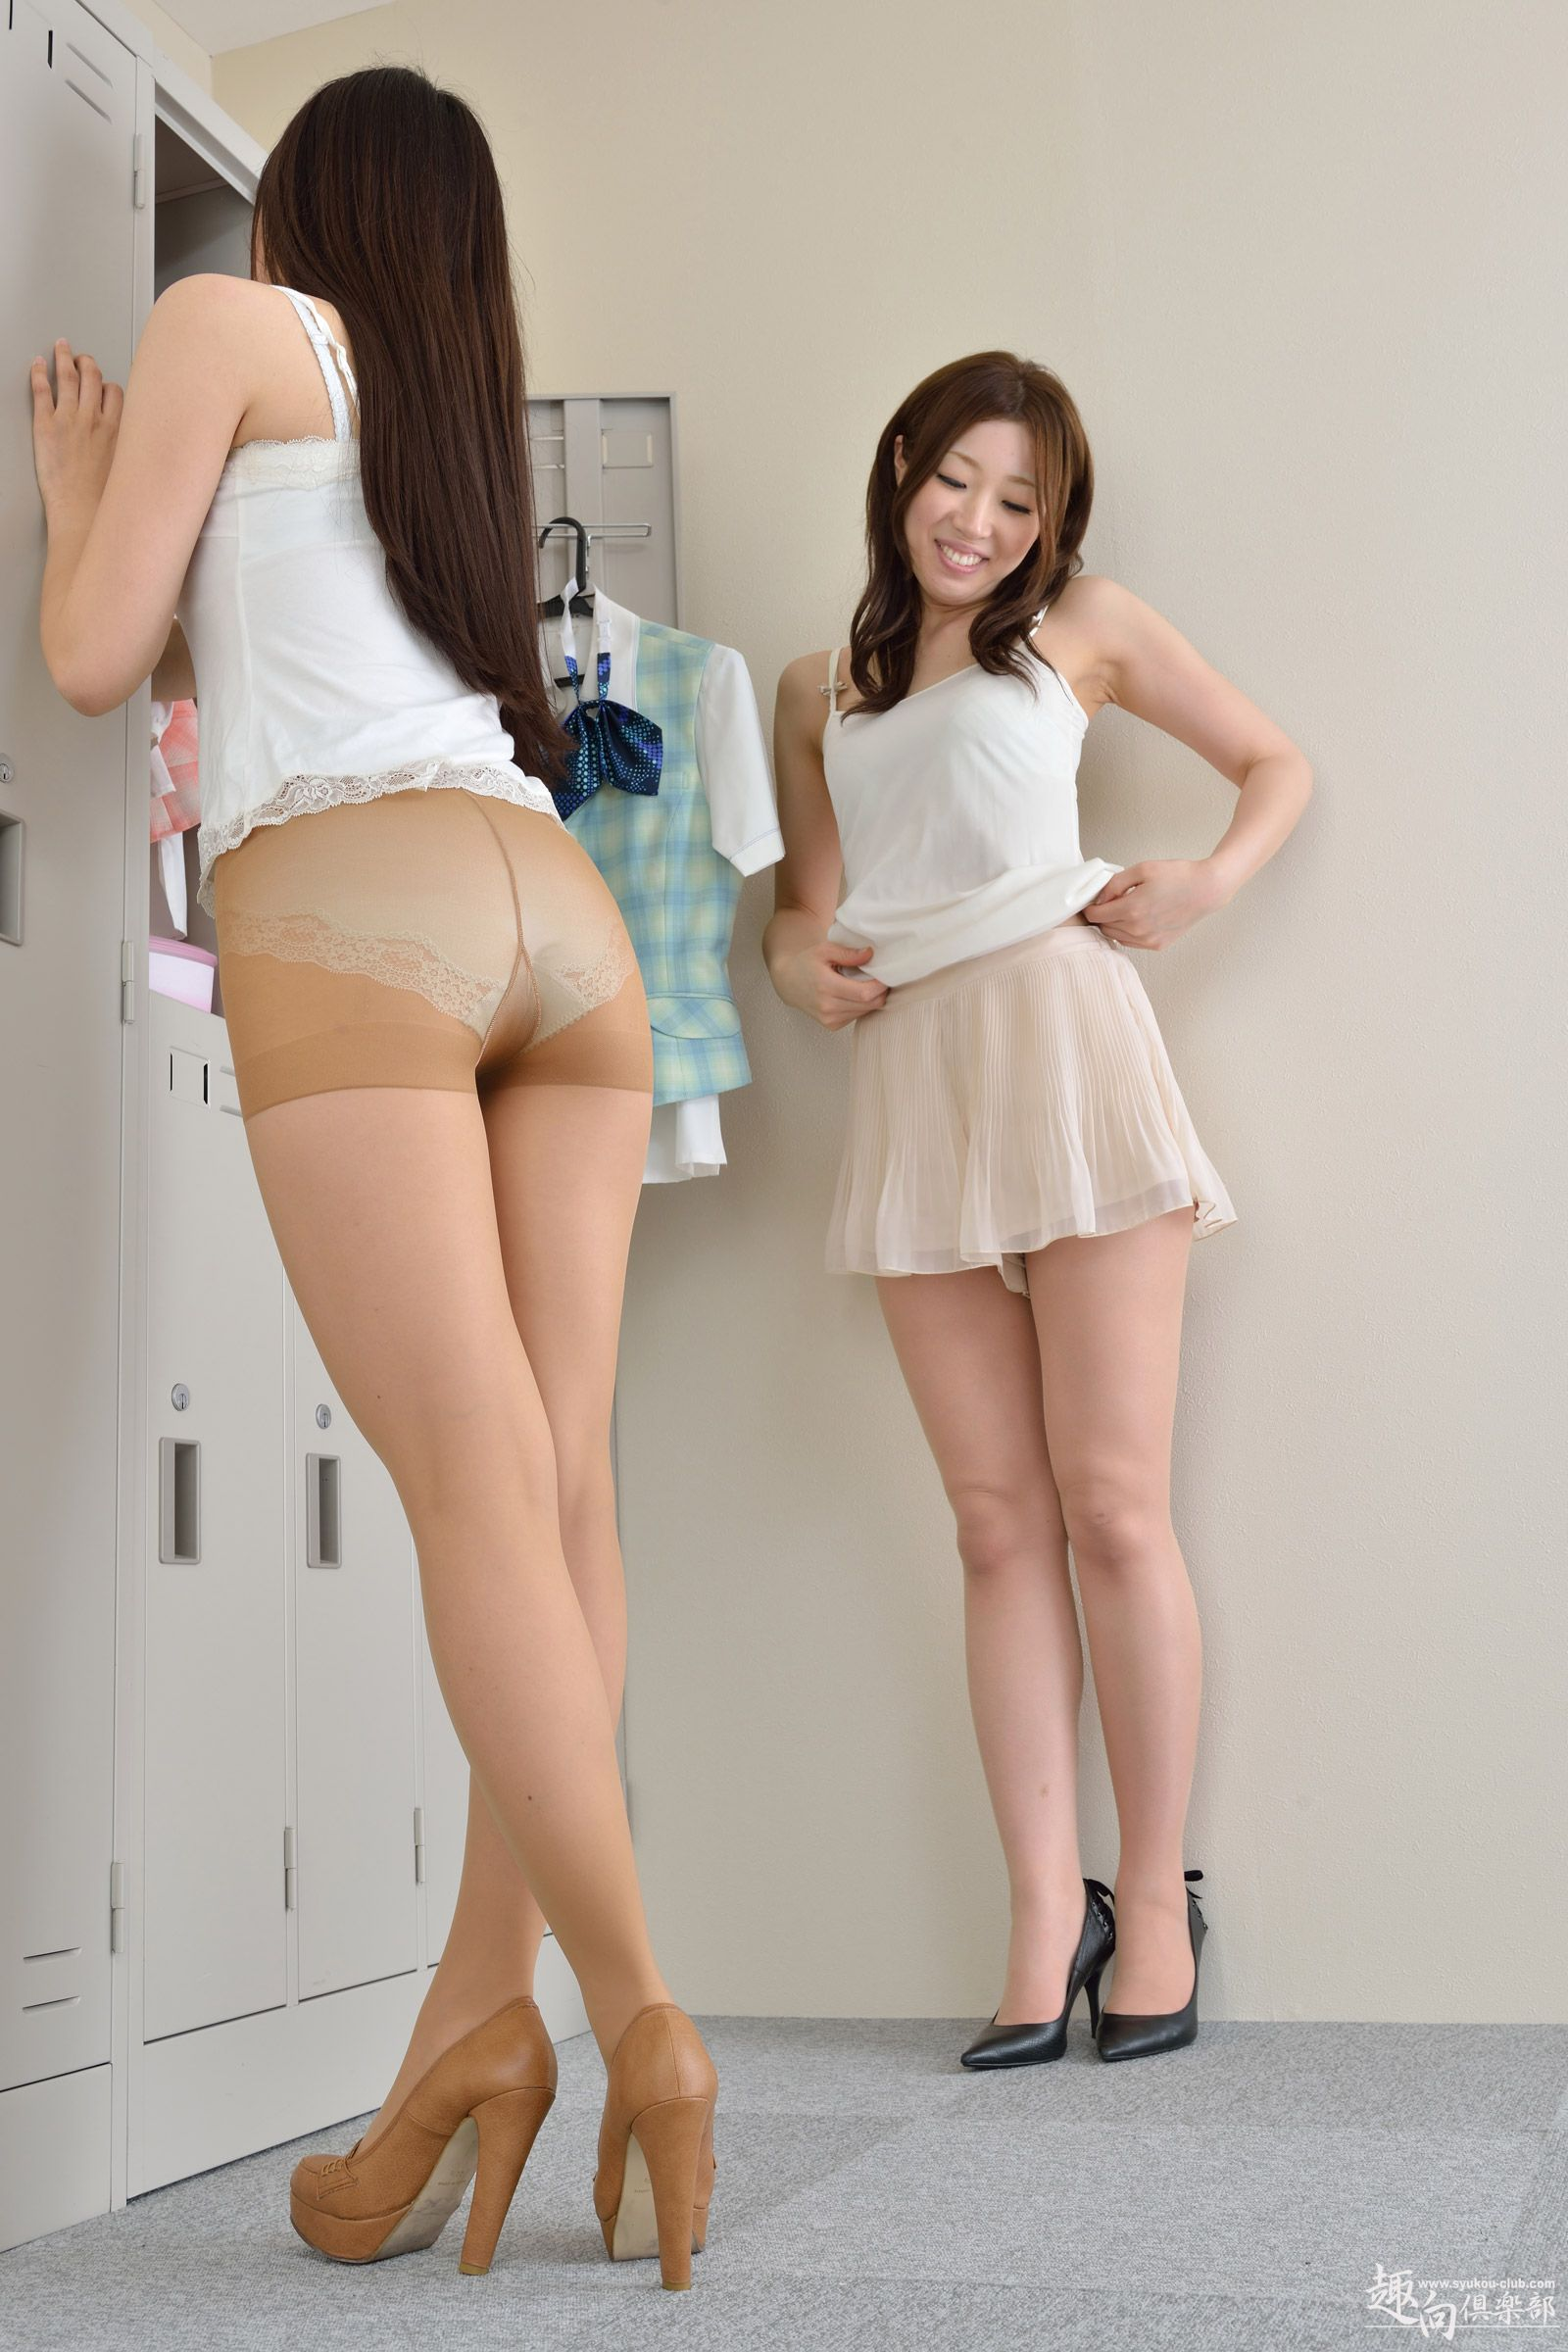 locker pantyhose Asian room